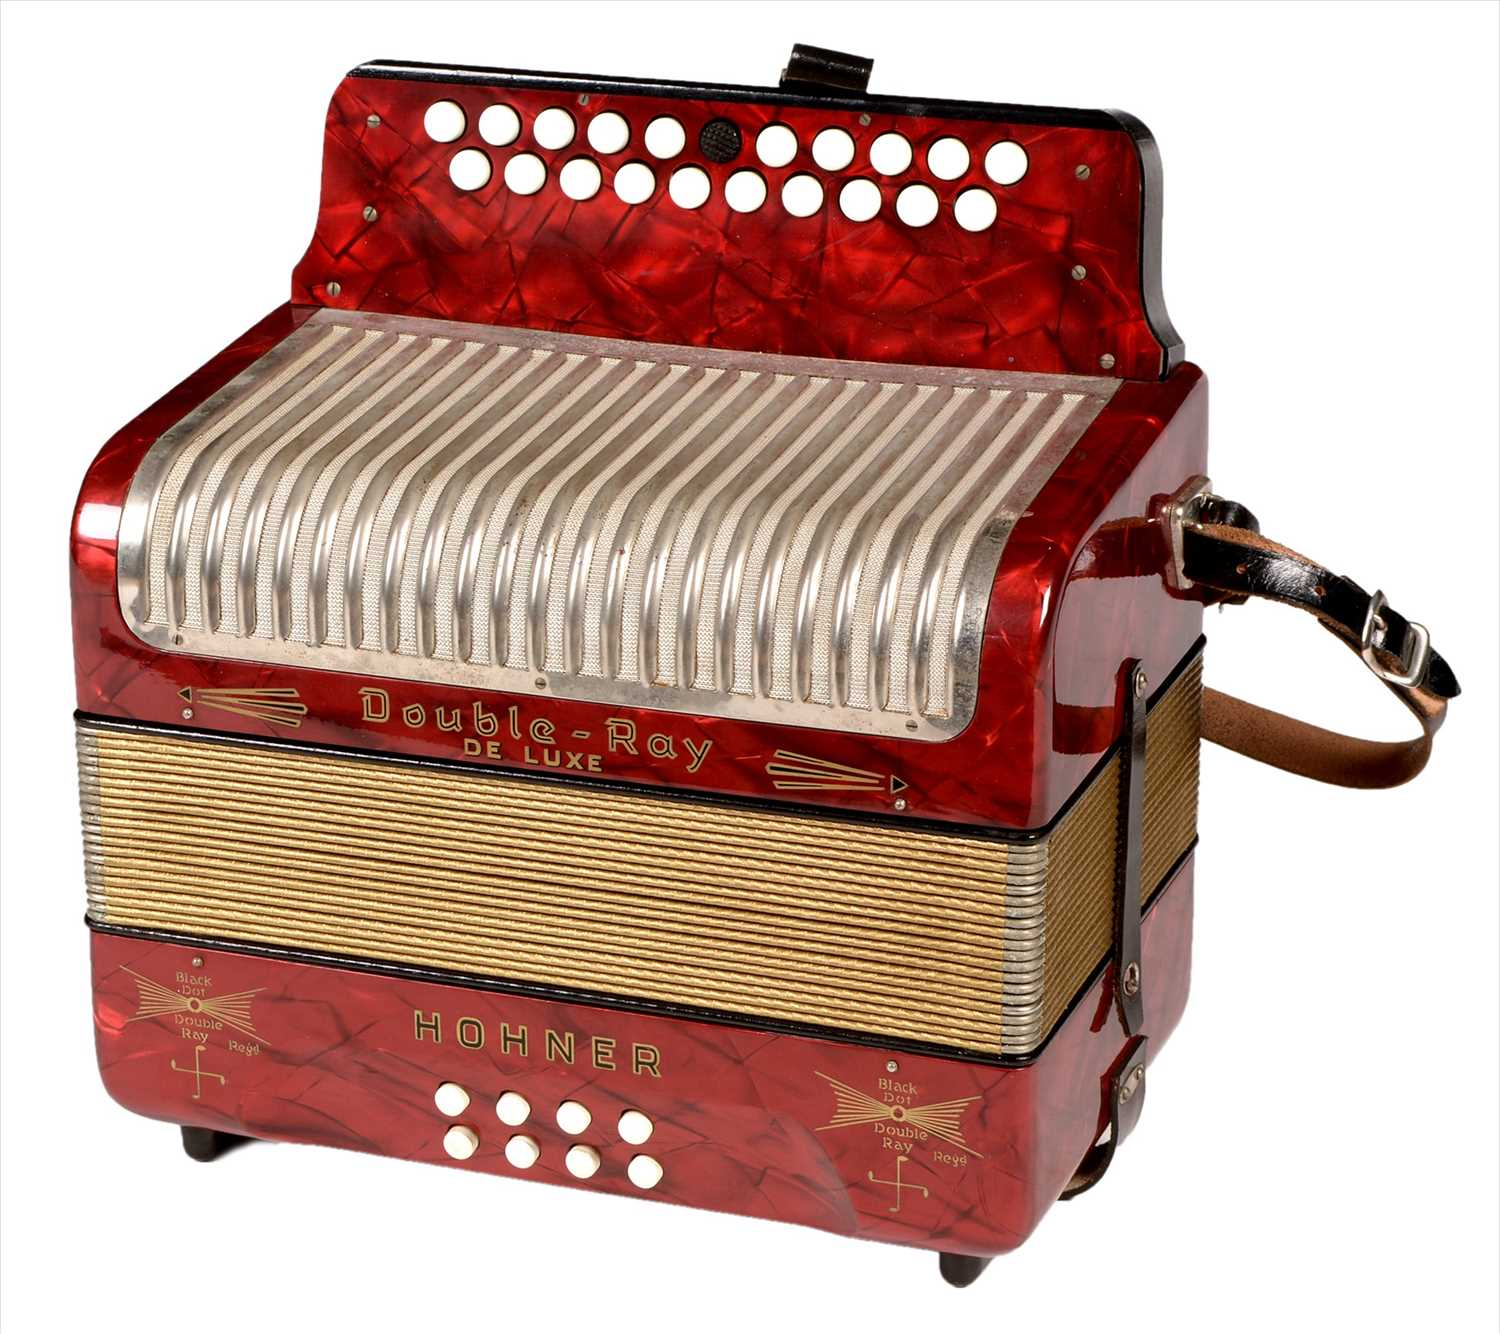 Lot 2-Hohner Double-Ray button accordion